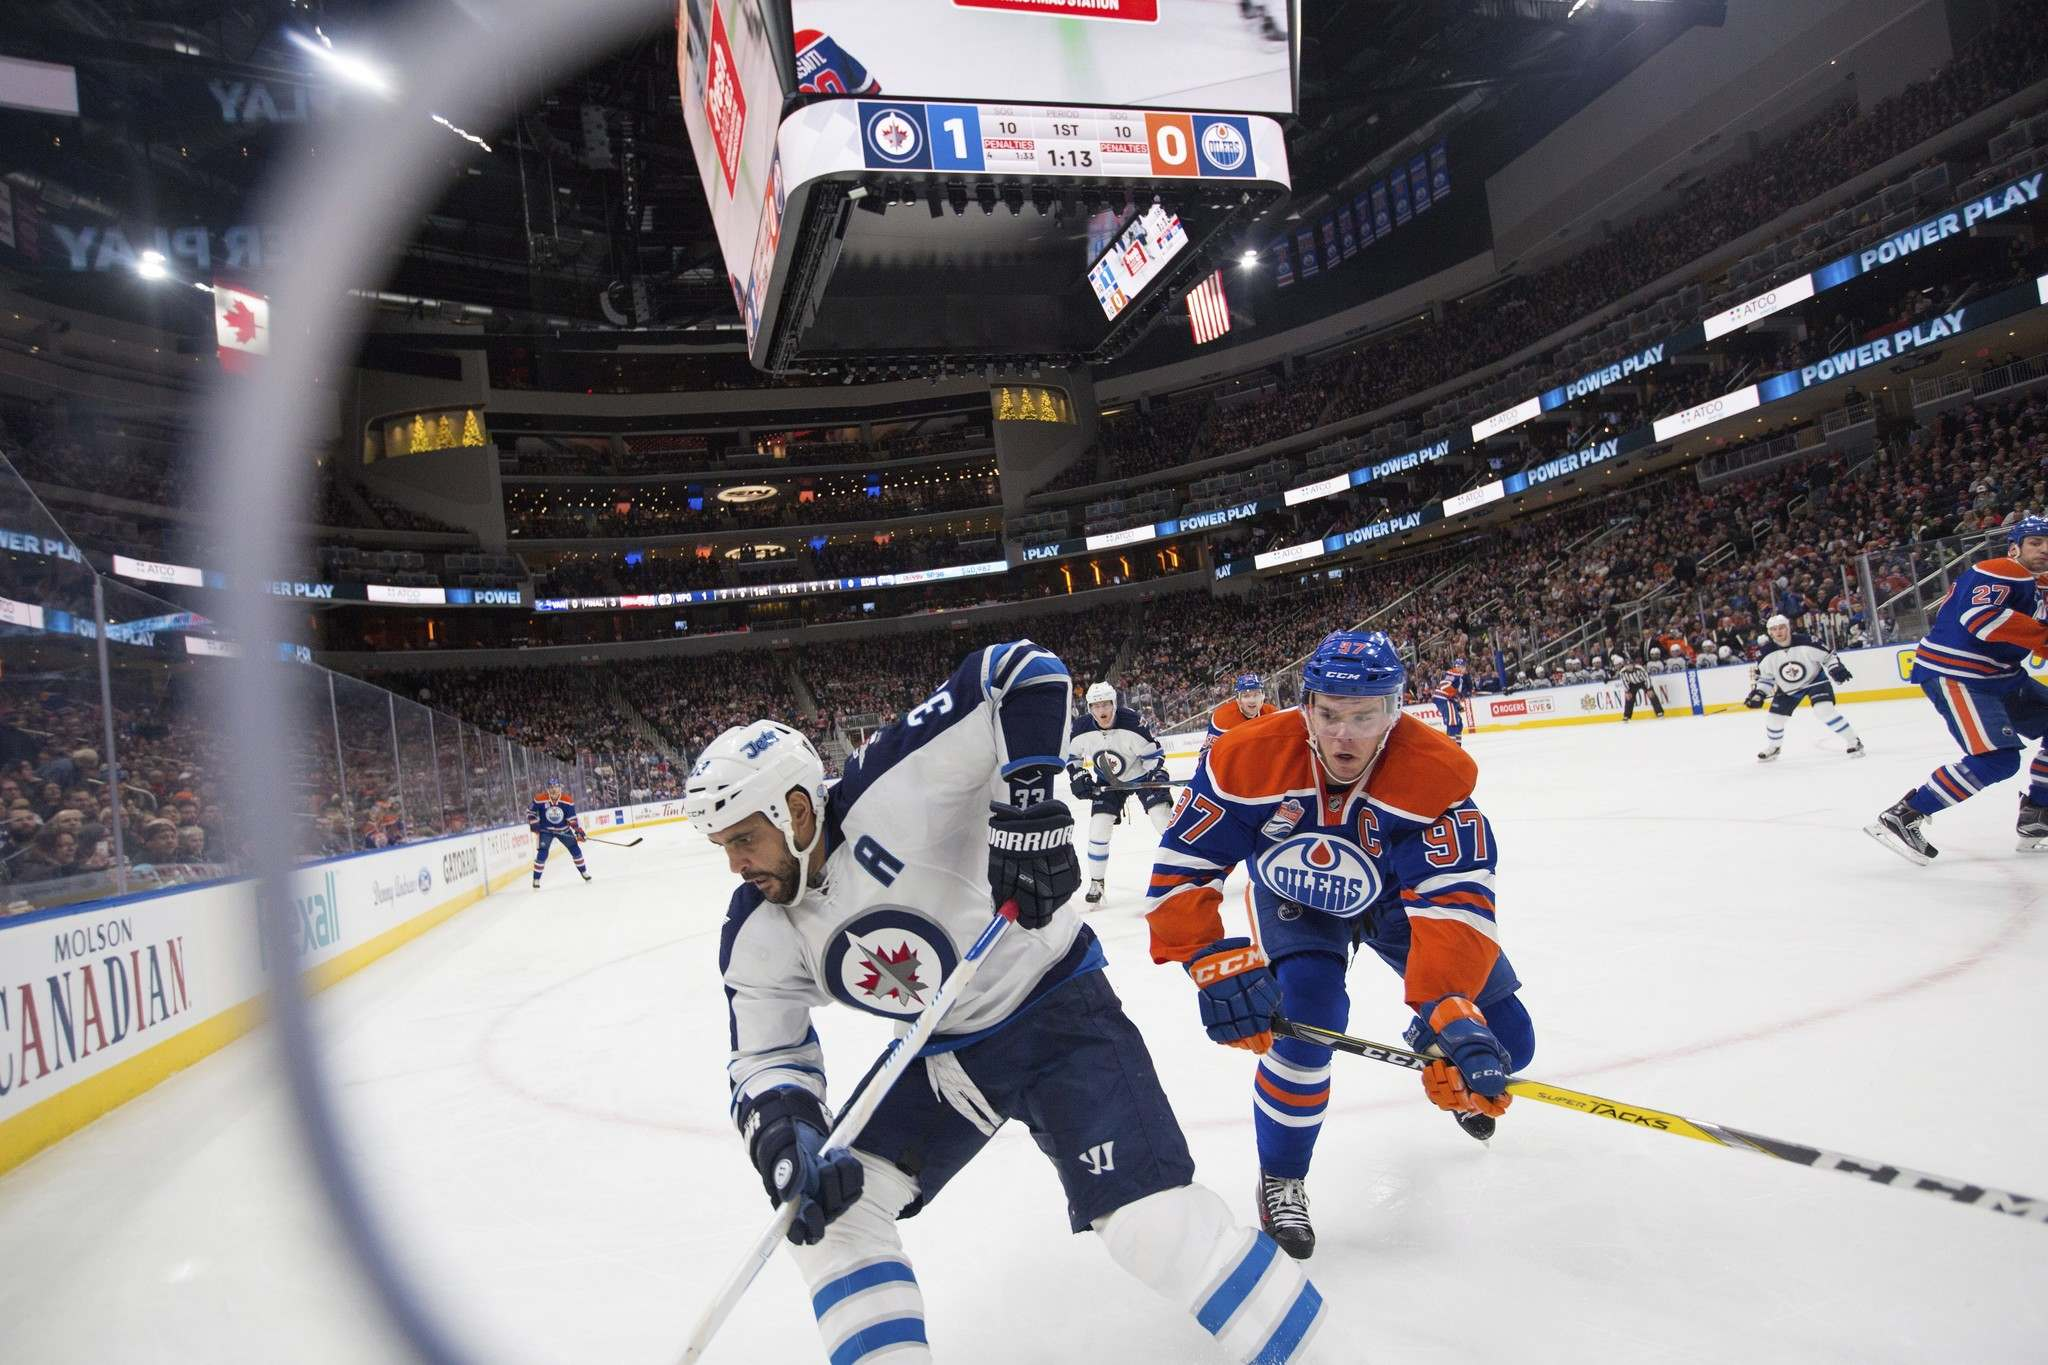 Amber Bracken / The Canadian Press</p><p>Winnipeg Jets' Dustin Byfuglien (33) keeps ahead of Edmonton Oilers' Connor McDavid (97) with the puck during first period NHL hockey action in Edmonton, Alta., on Sunday December 11, 2016.</p>